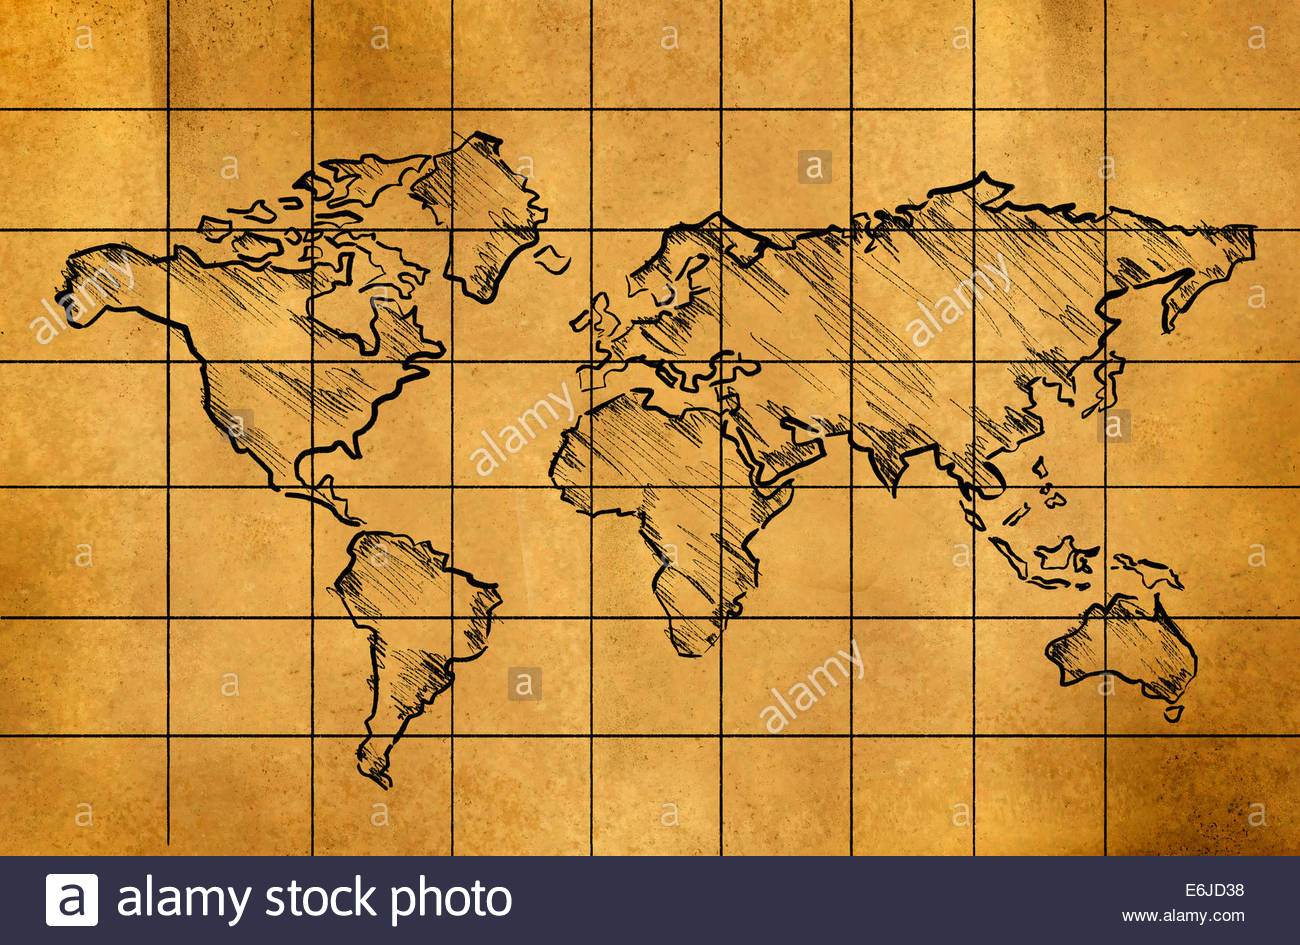 World map drawing at getdrawings free for personal use world 1300x945 world map sketch on old paper grid art drawing stock photo gumiabroncs Image collections